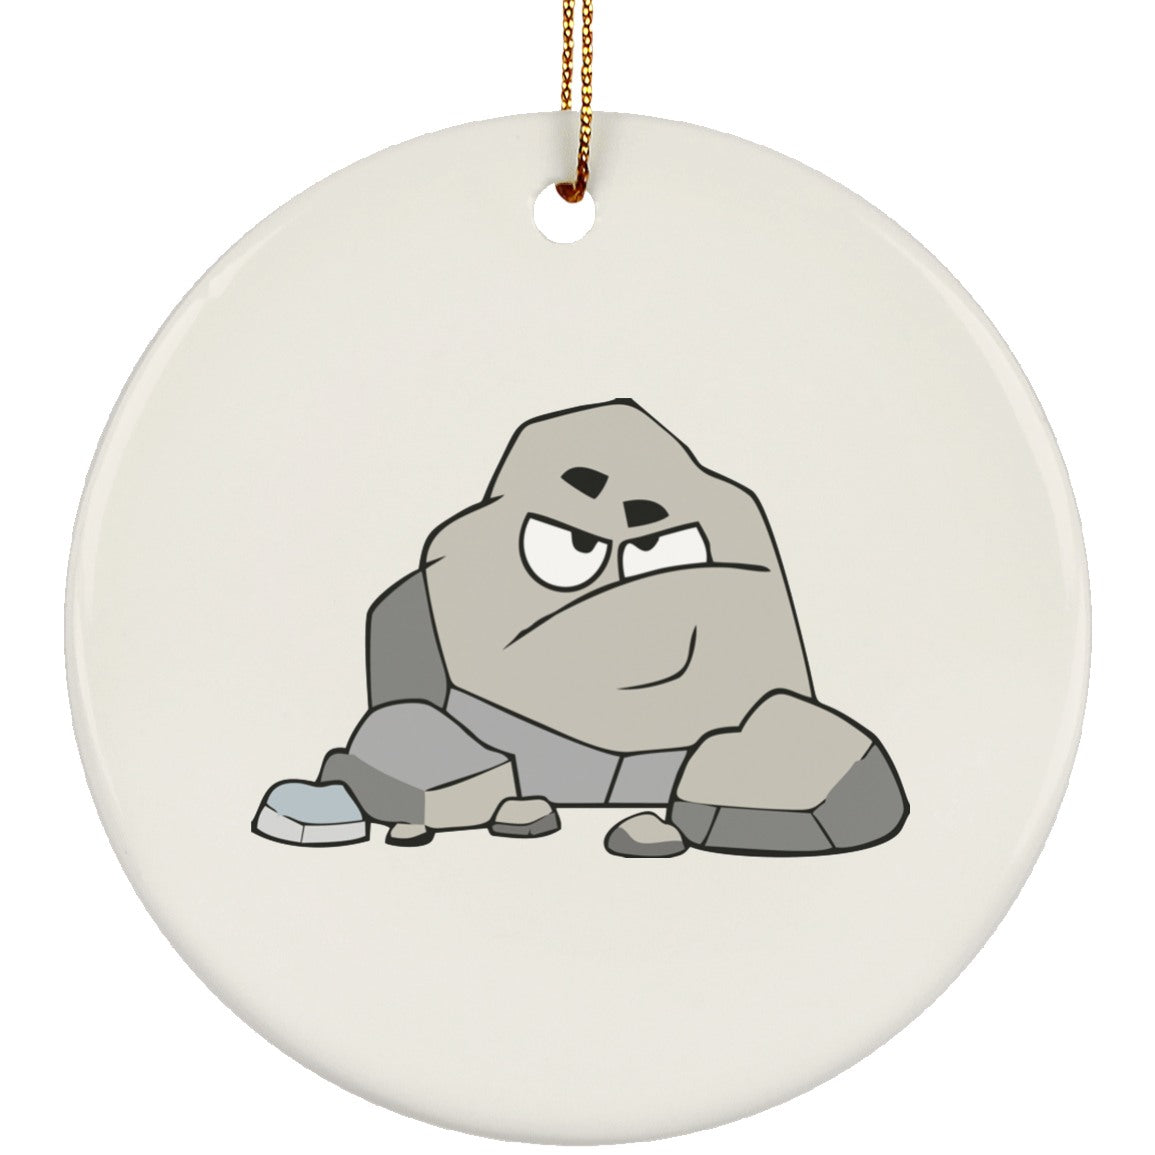 Chronic Kidney Stones Monster Circle Ornament - The Unchargeables